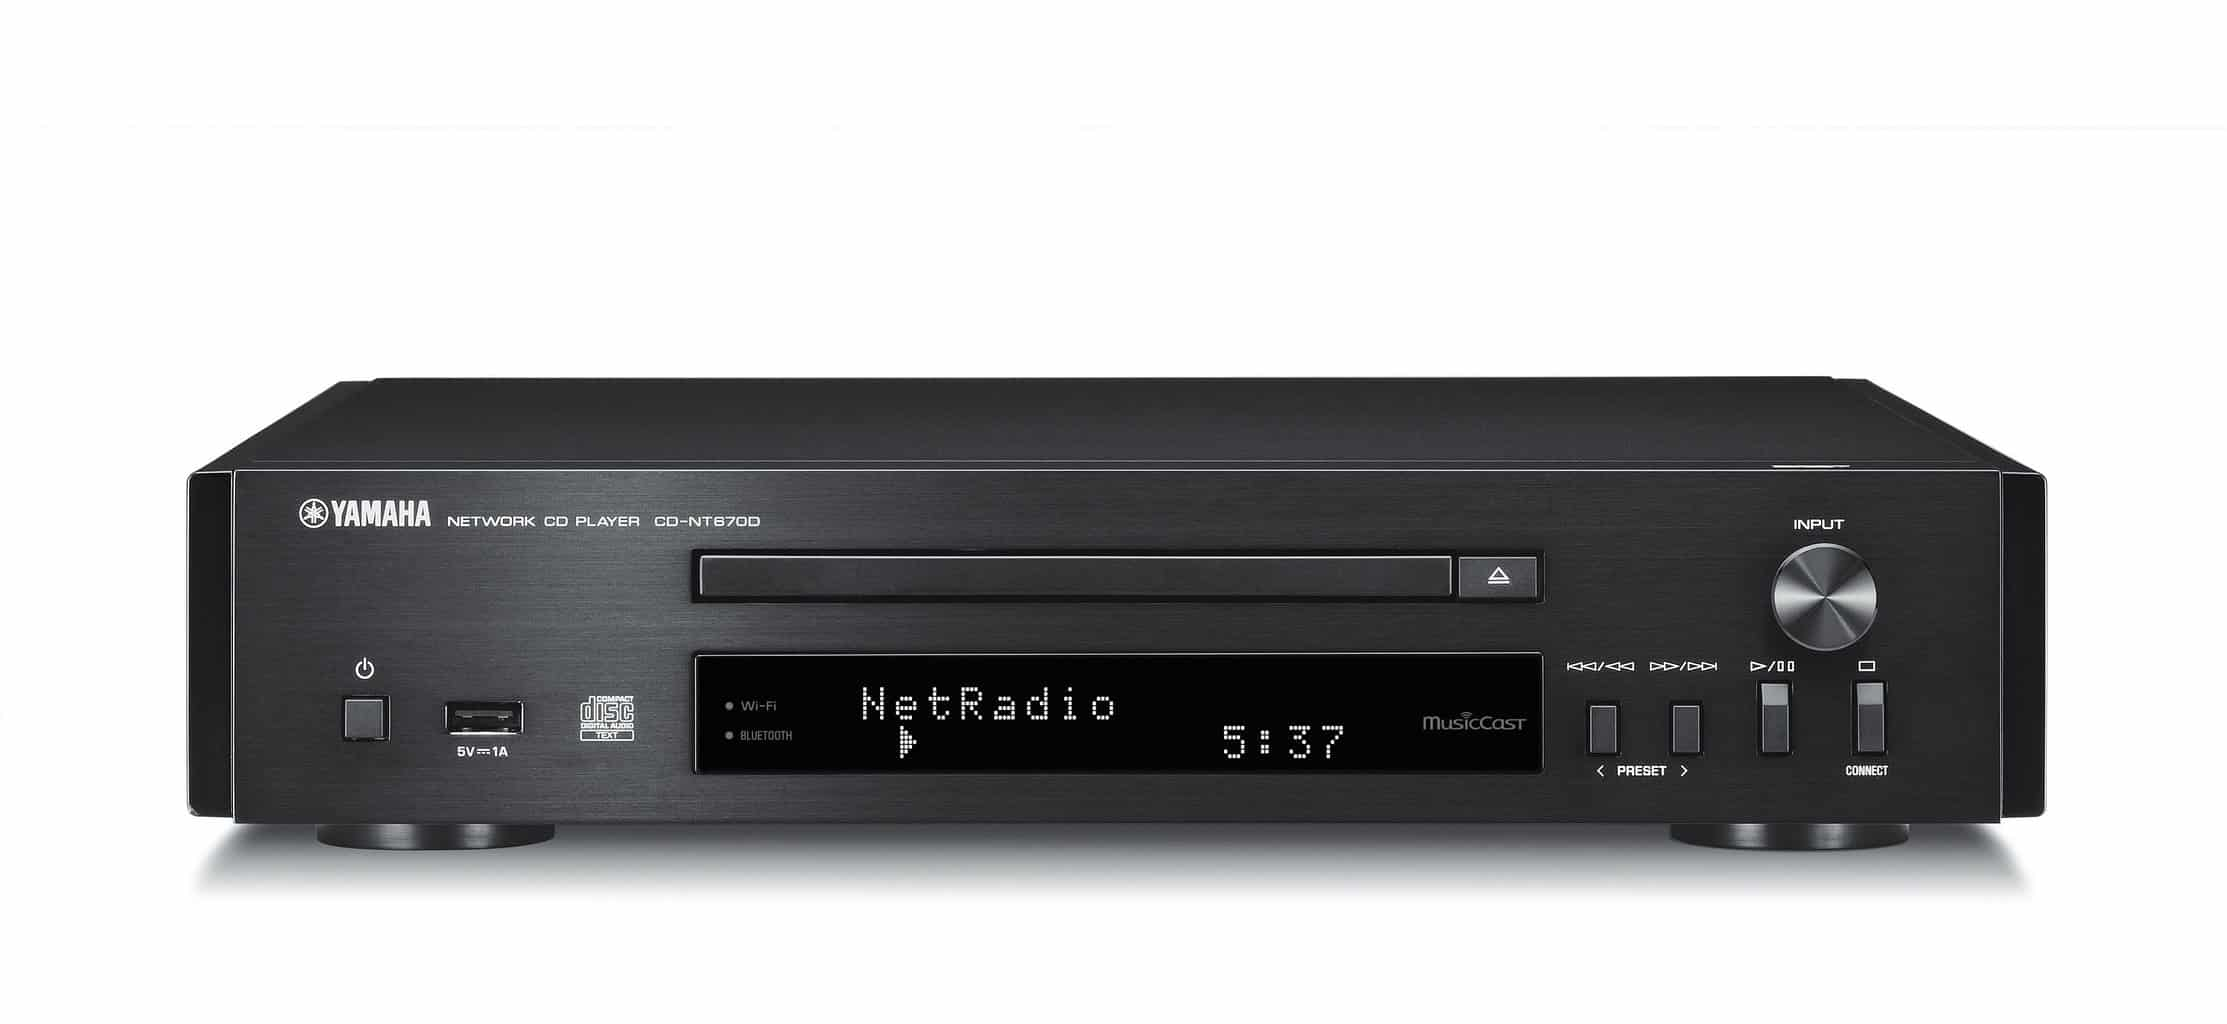 Yamaha Network Media Player